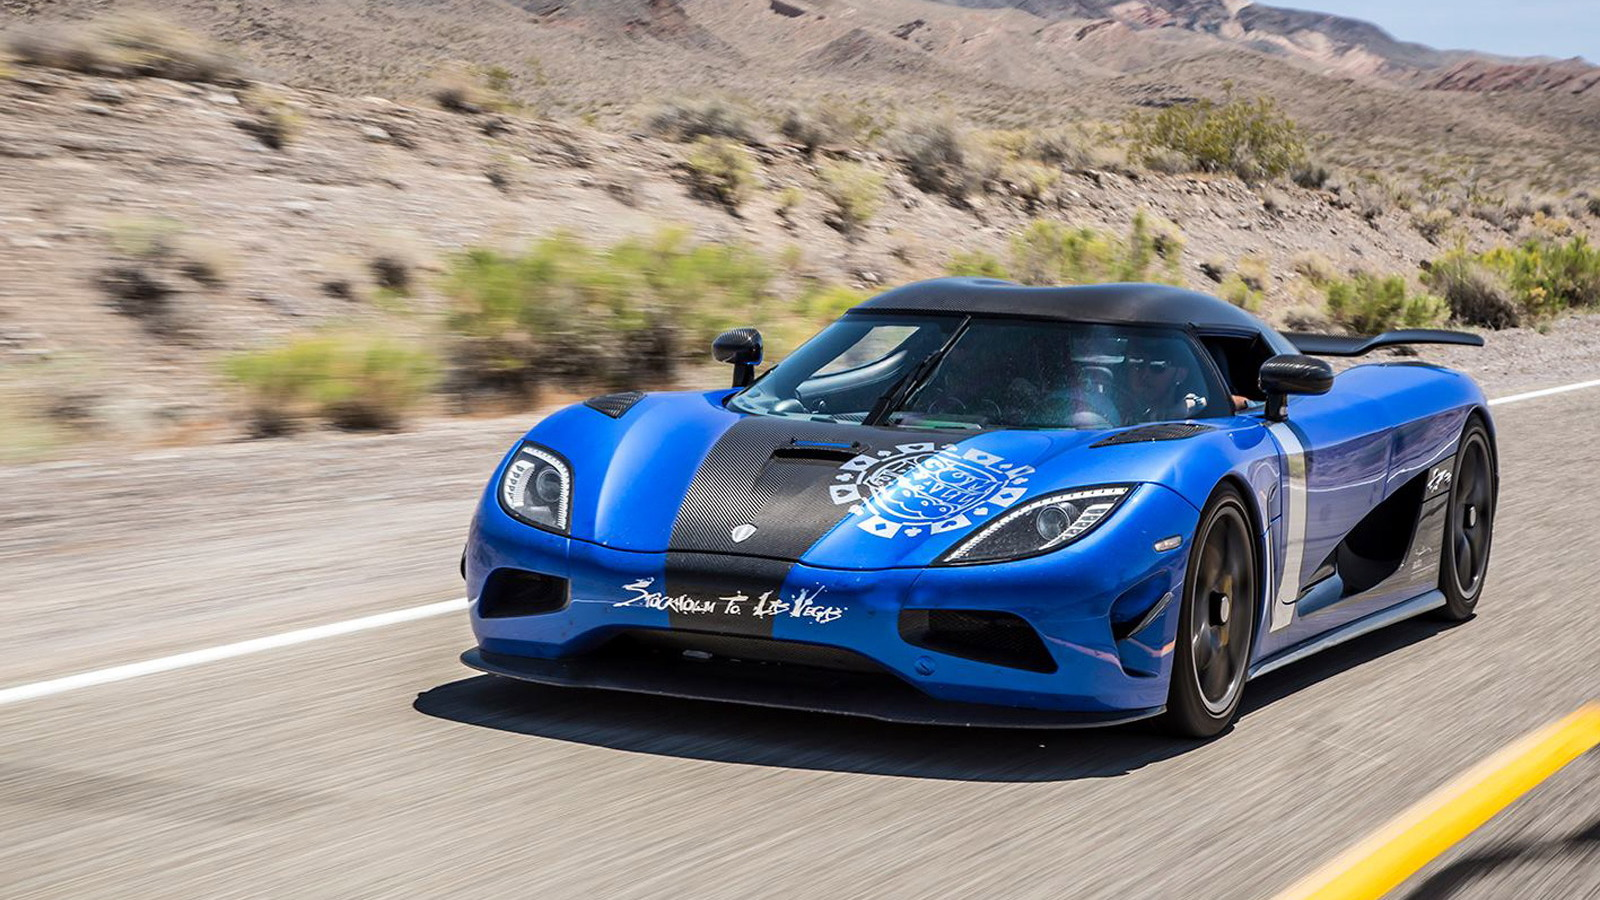 Lewis Hamilton drives a Koenigsegg Agera S in the 2015 Gumball 3000 rally